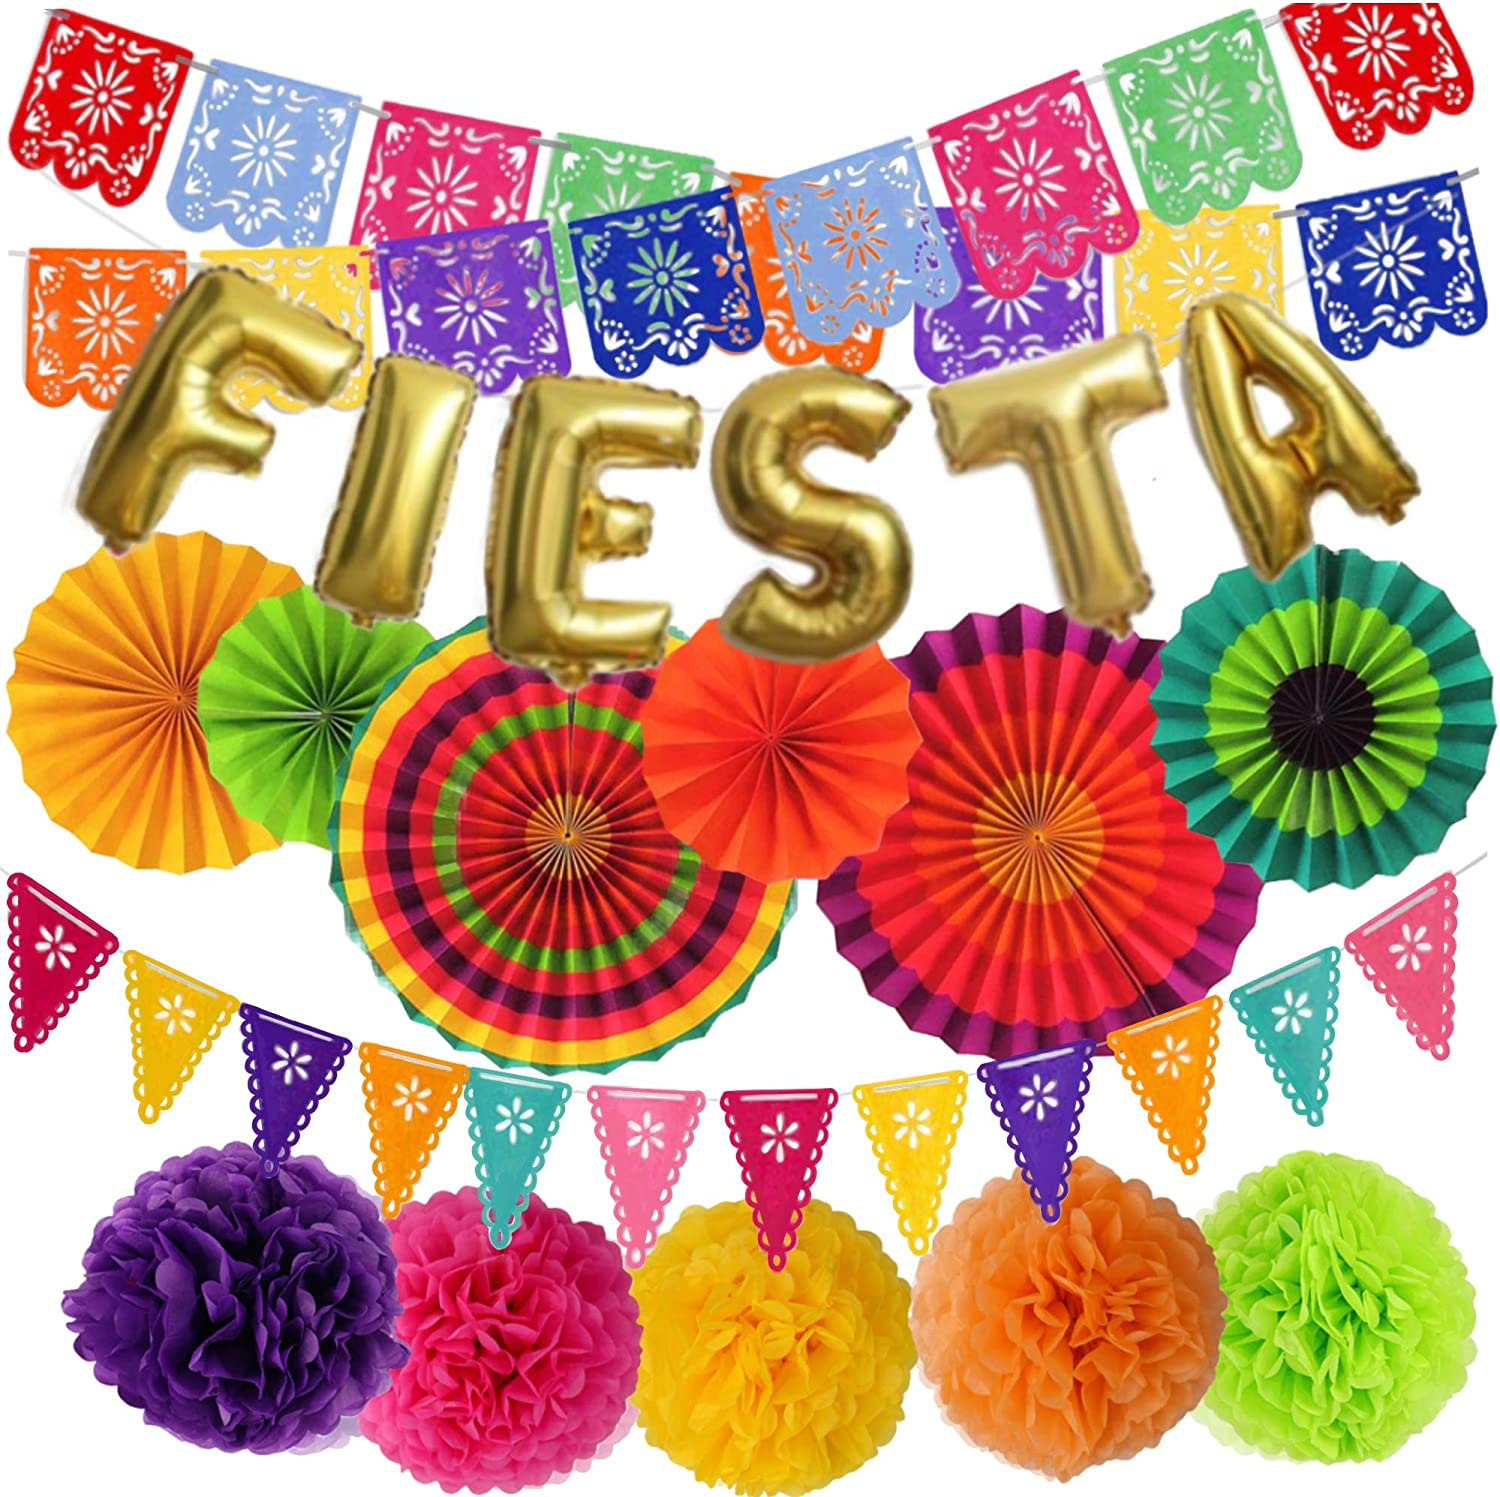 Mexican Fiesta Party Decorations – Cinco De Mayo - 6 Paper Fans, 5 Flowers Pom Poms, 2 Papel Picado, 1 Pennants Garland, Taco Bout Tuesday, Birthday, Engagement Supplies